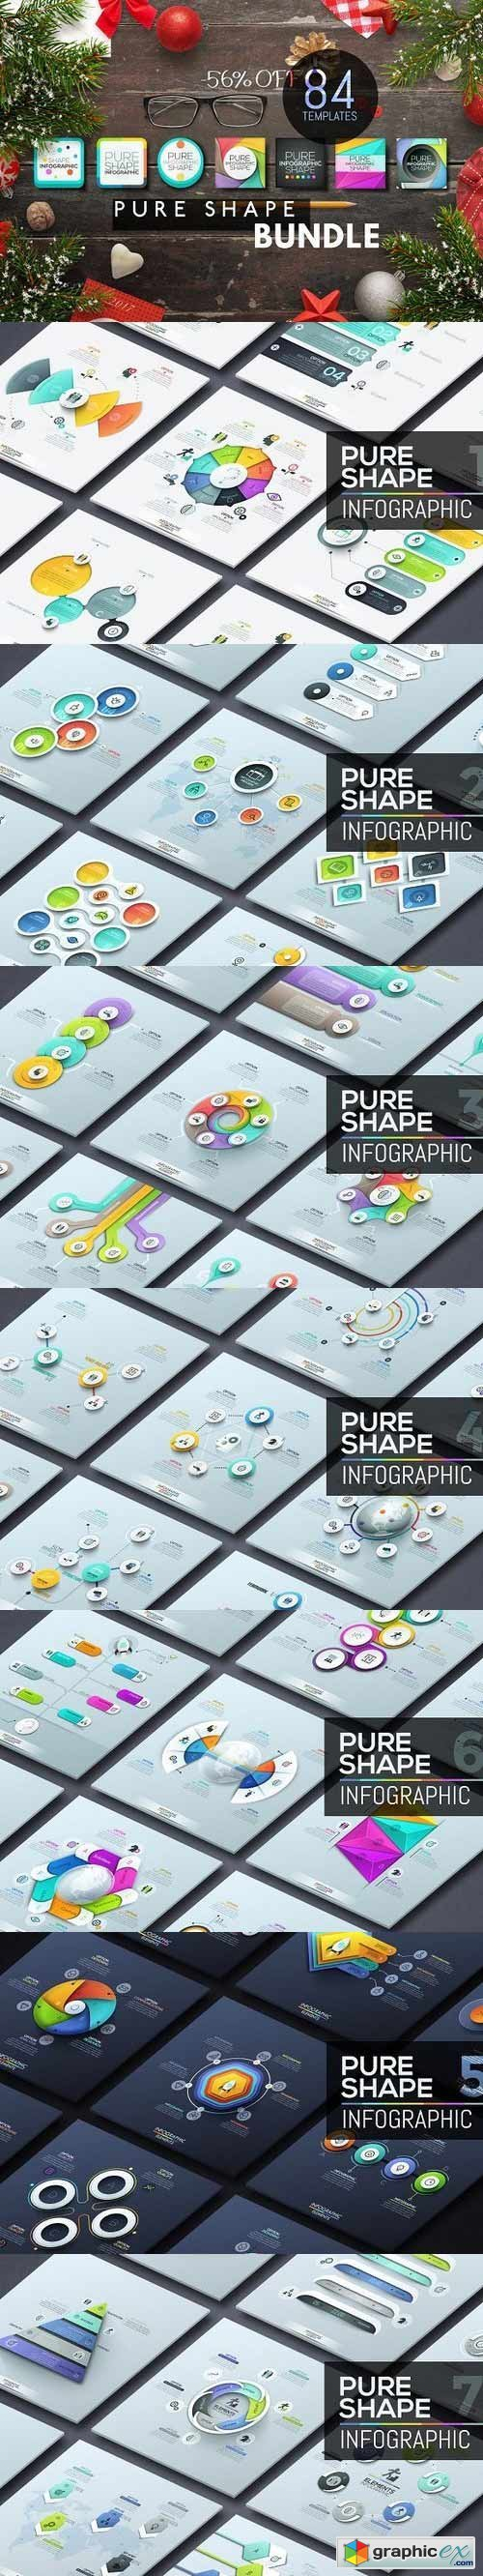 Pure Shape Infographic Bundle